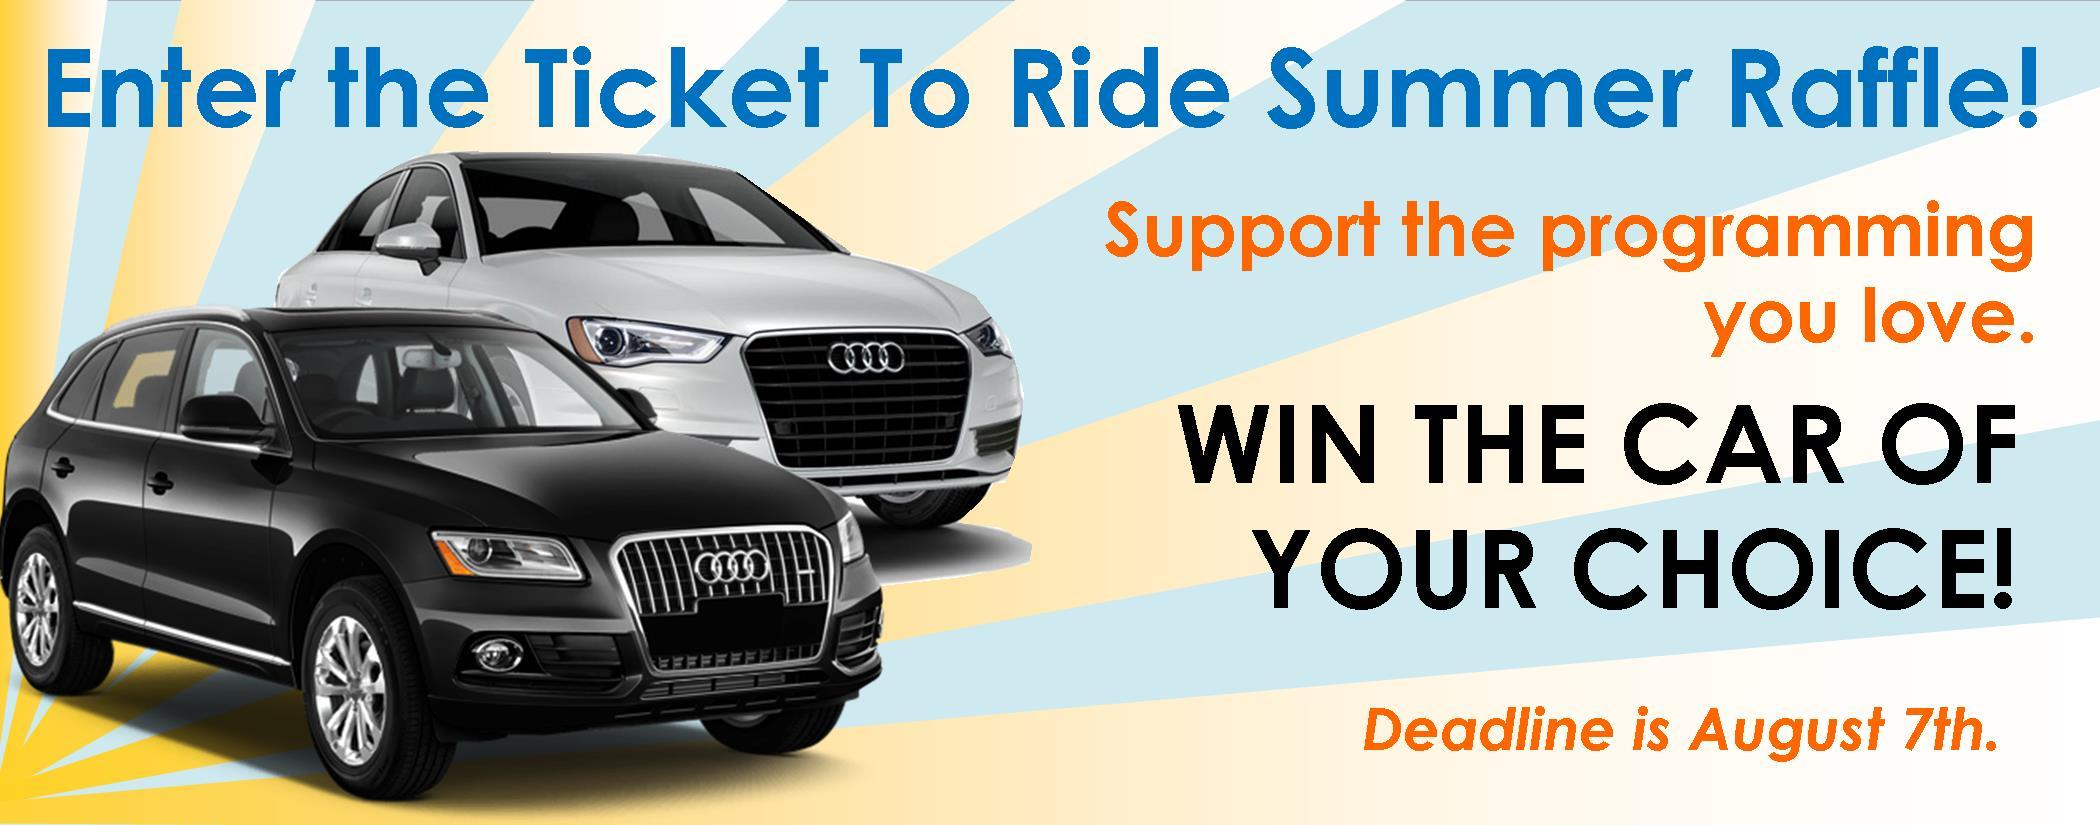 ticket to ride summer raffle: win the car of your choice! | bpr